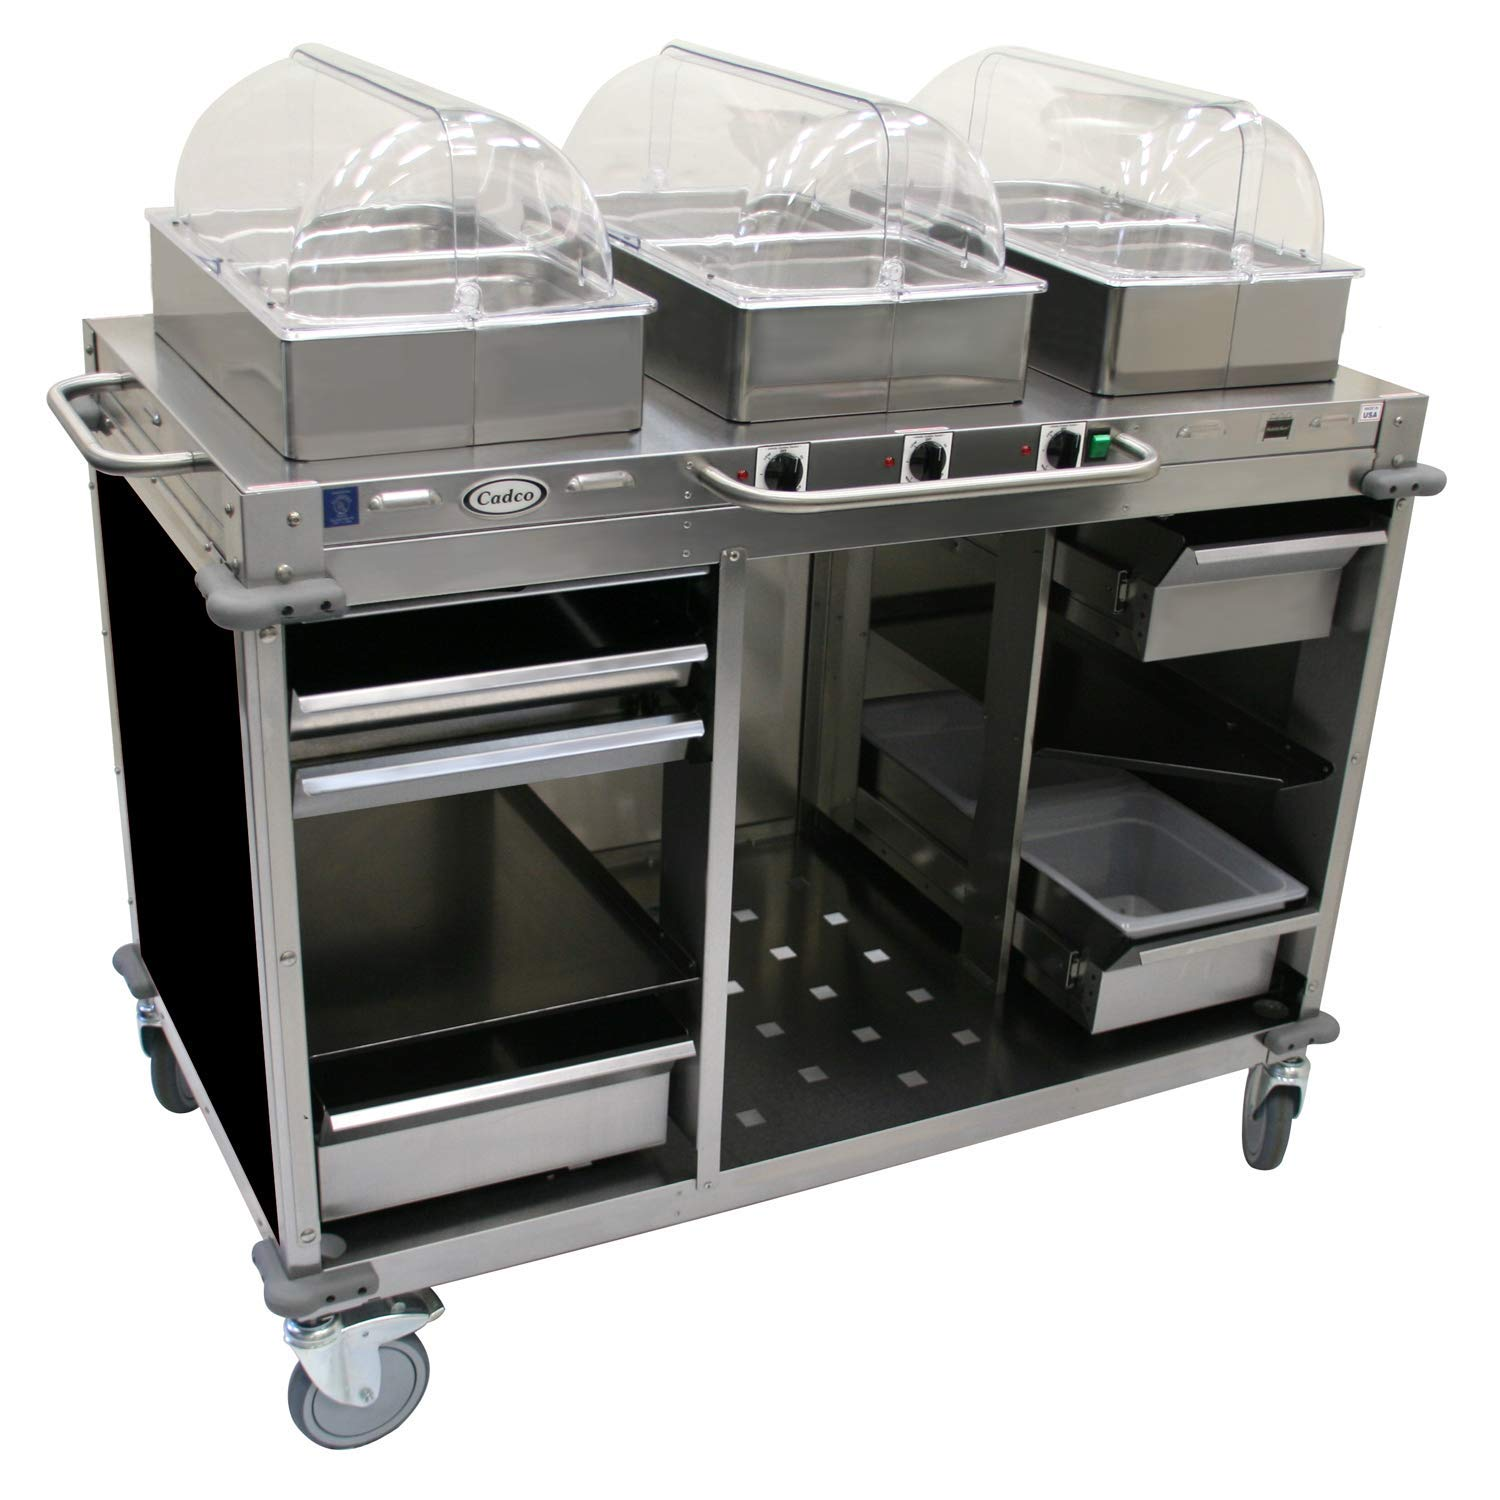 "Mobile Hot Buffet Cart Color: Black, Size: 51"" H x 55.5"" W x 28.75"" D"